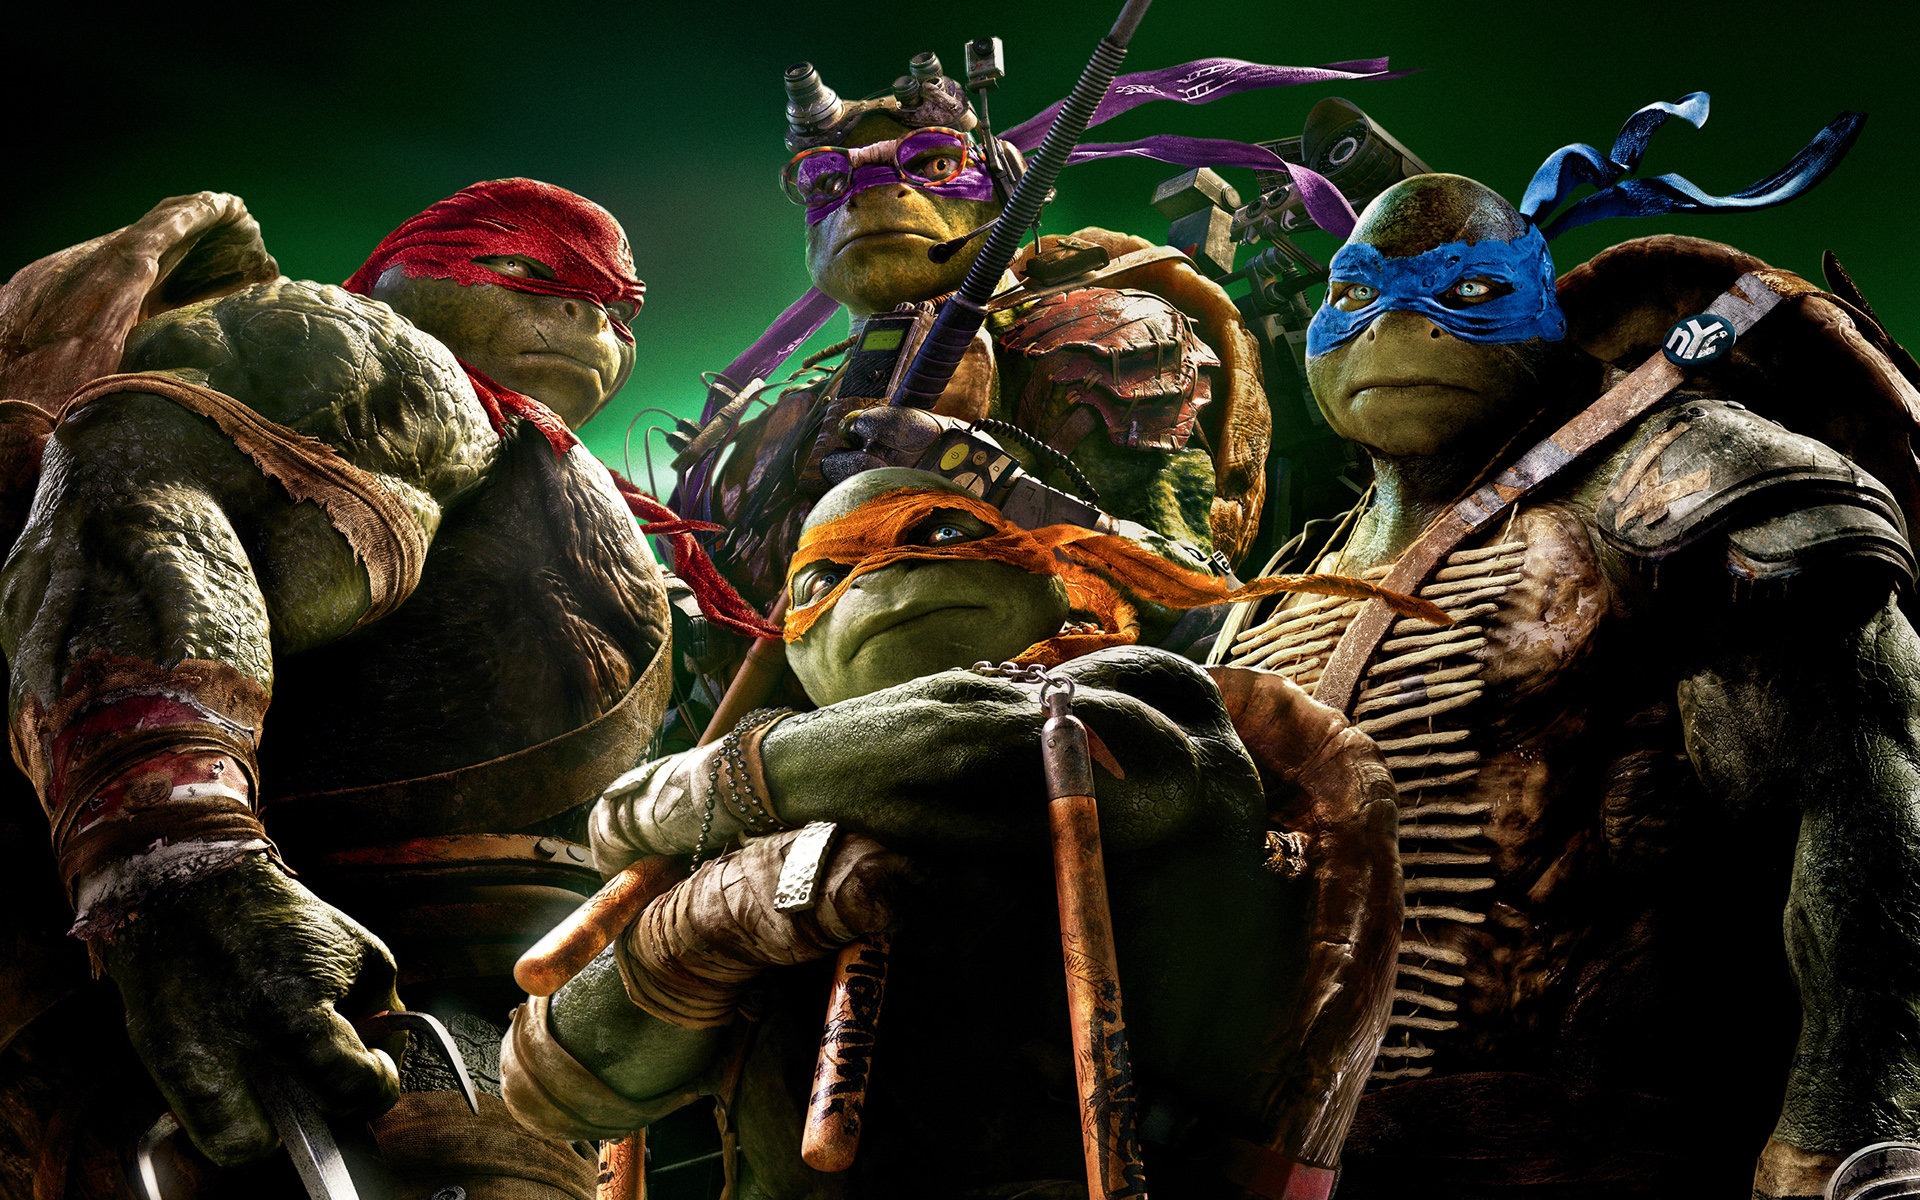 Download hd 1920x1200 Teenage Mutant Ninja Turtles (2014) TMNT movie computer background ID:234159 for free